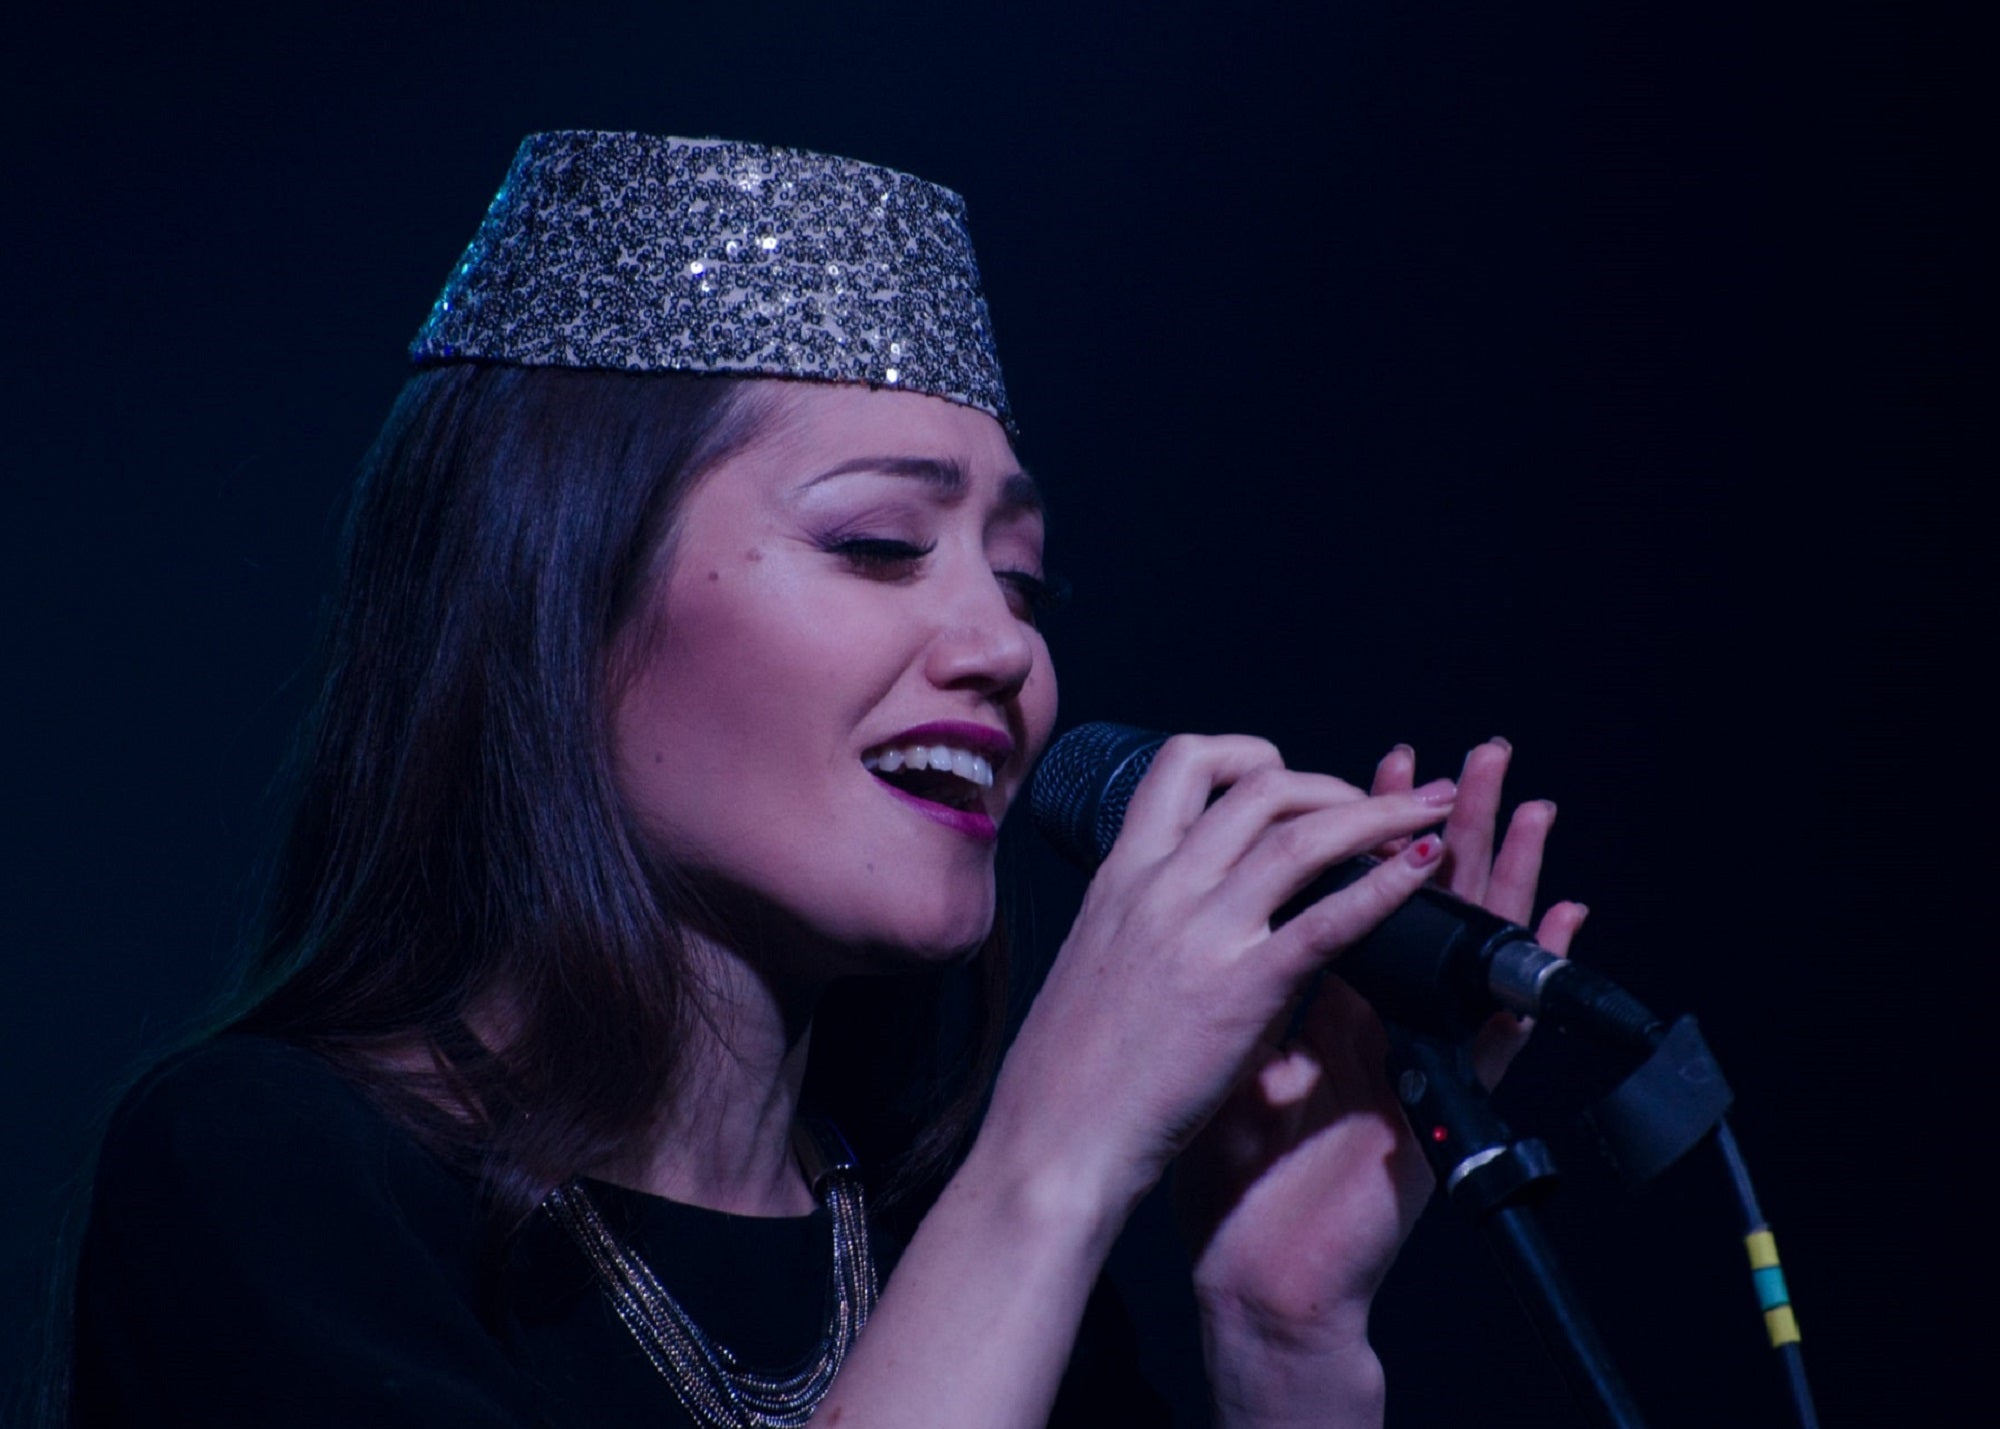 Person with long black hair and in silver sequin hat at microphone